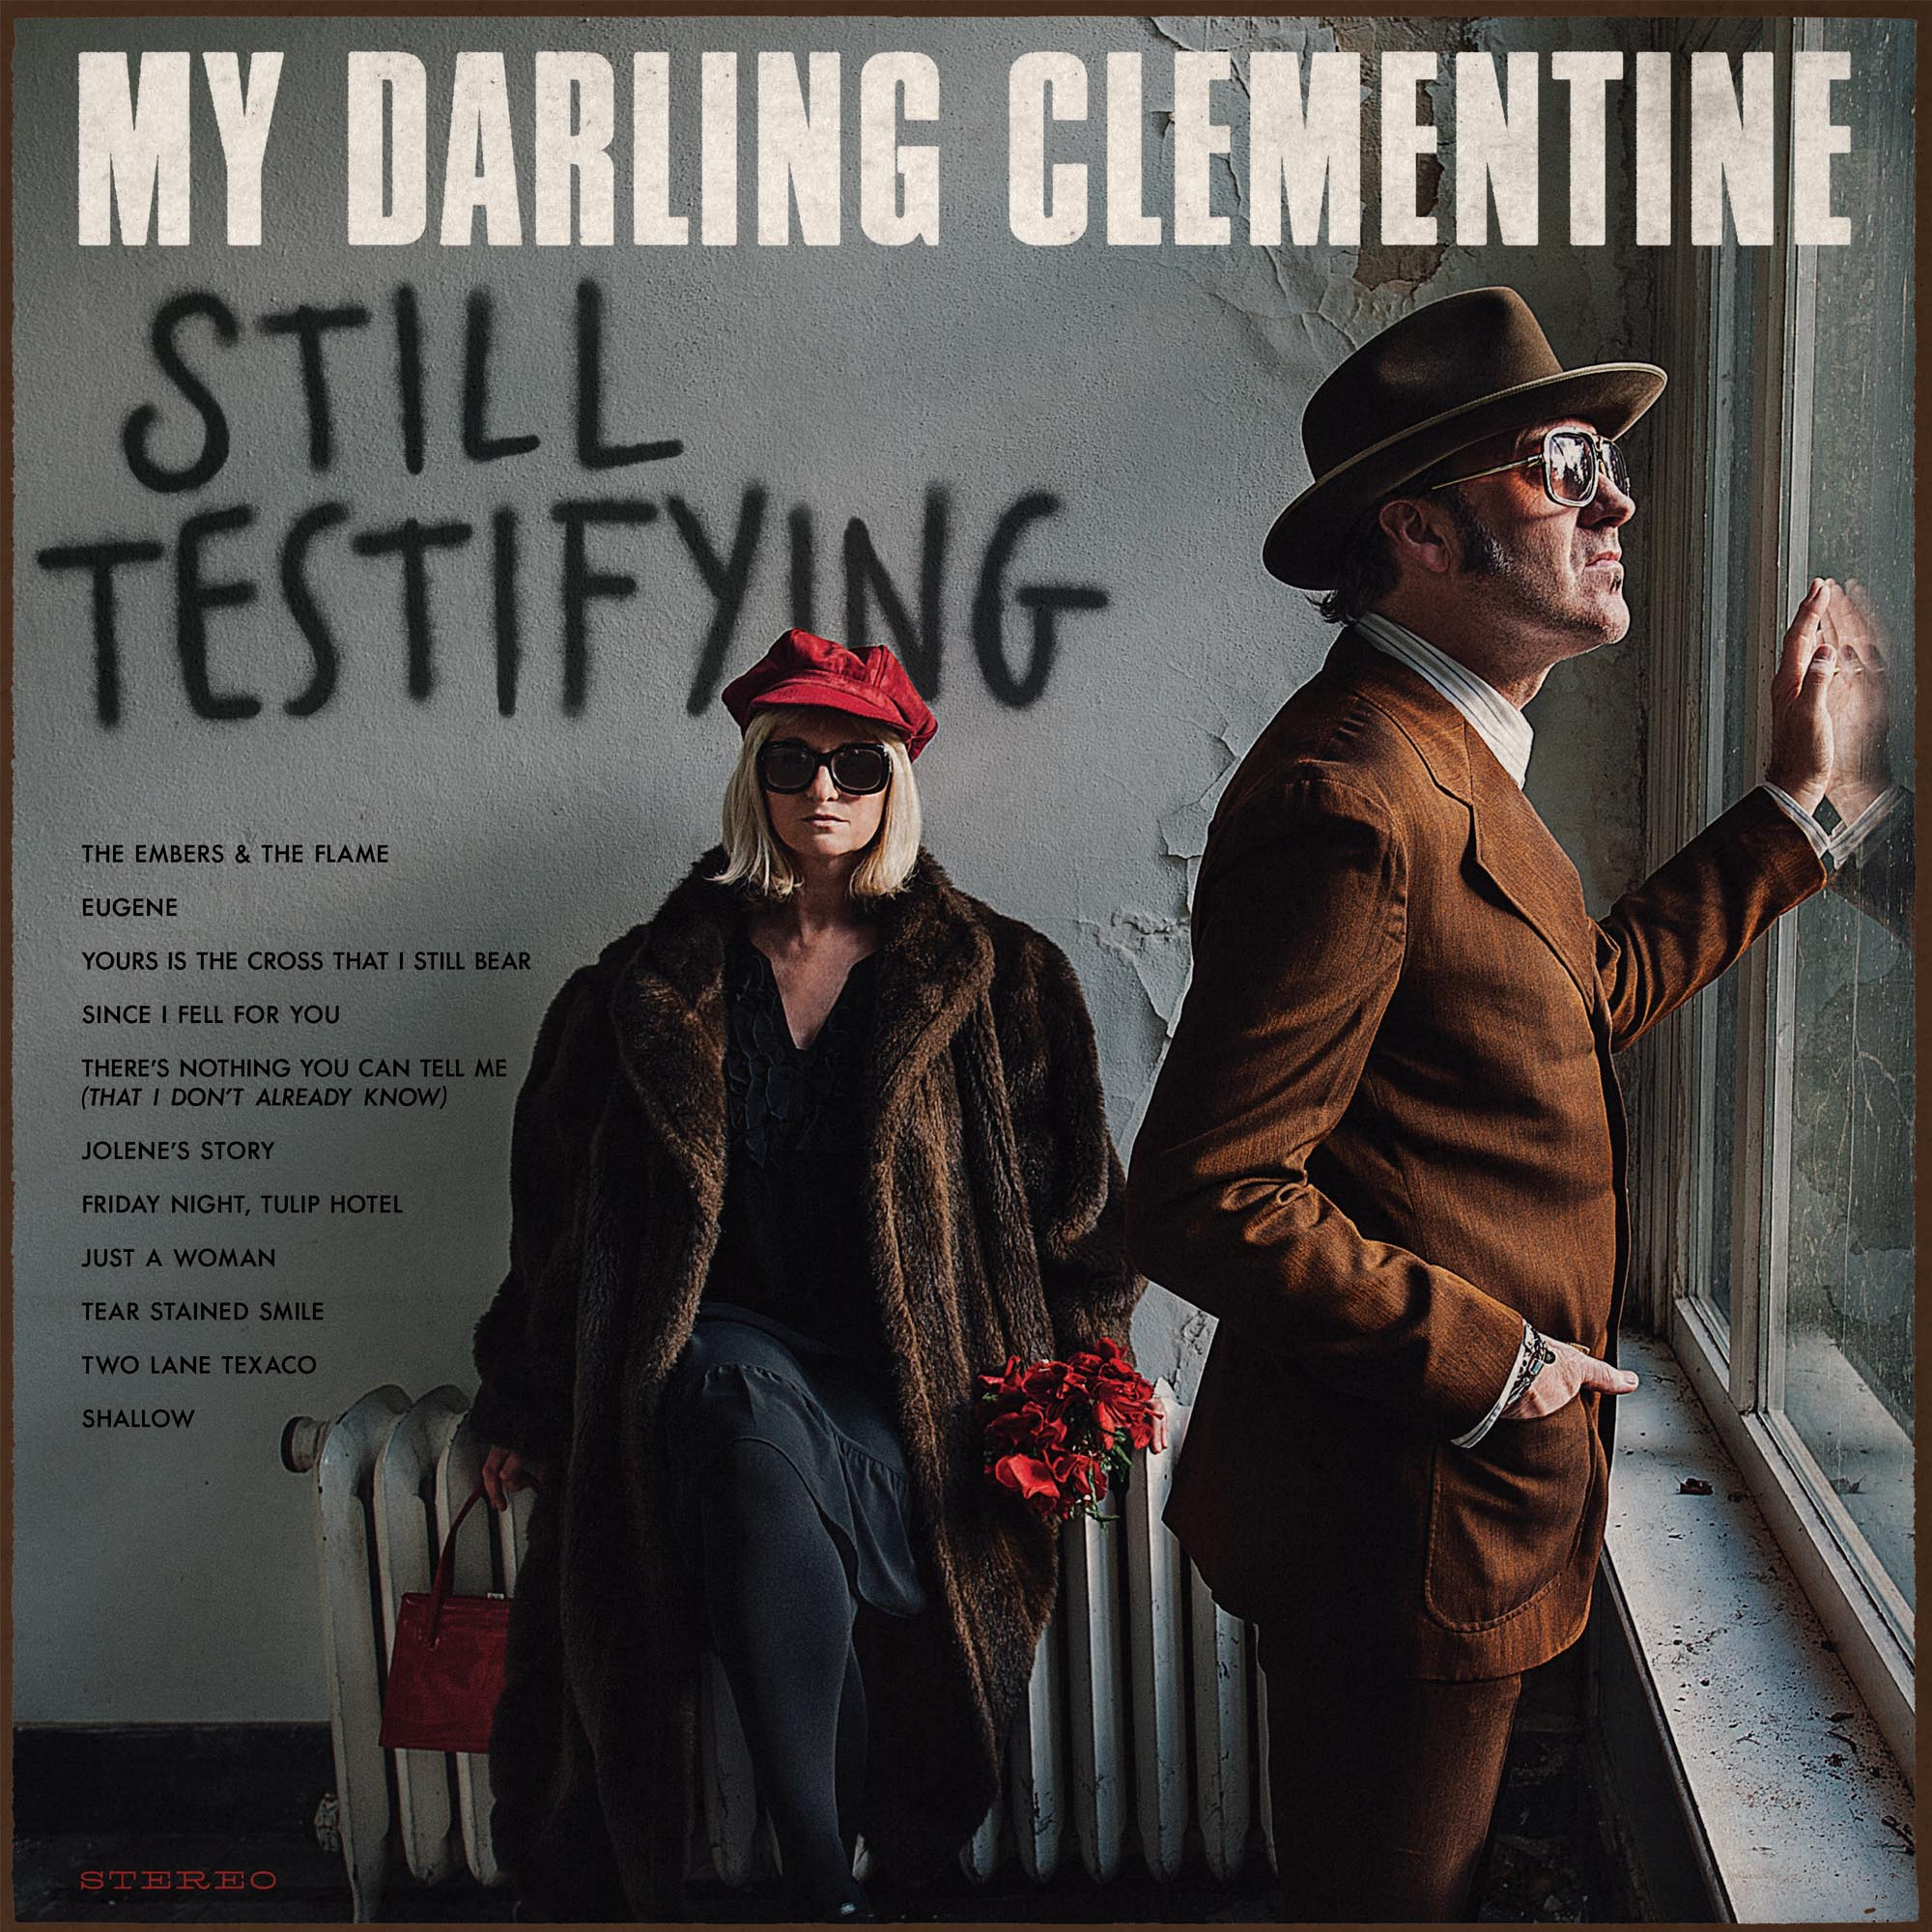 Still Testifying [VINYL]